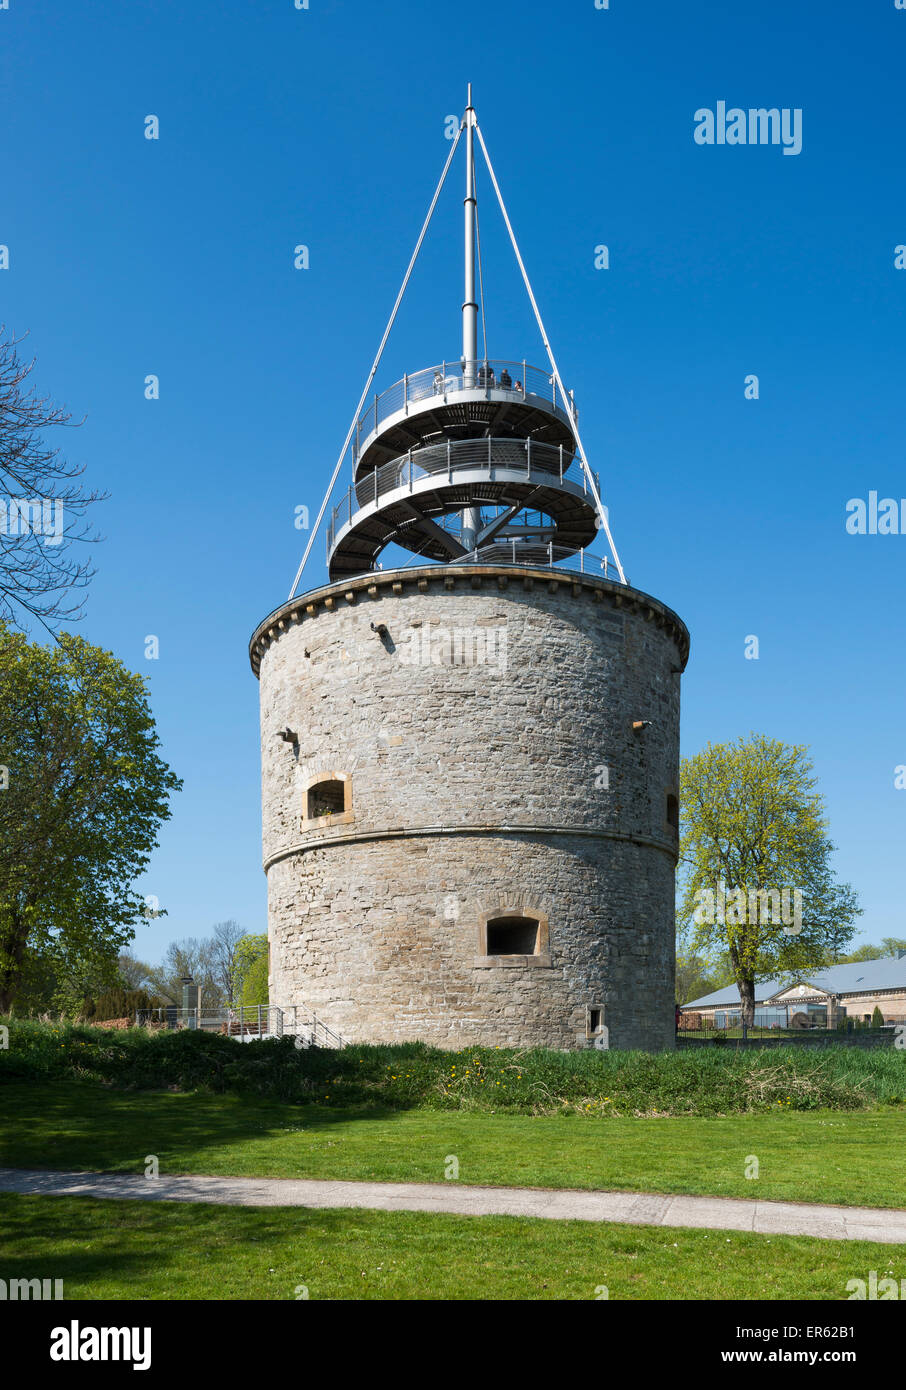 Lookout tower in egapark, 1530 turret of the citadel Cariaksburg, built on to in 1999, BUGA 2021, Erfurt, Thuringia, - Stock Image